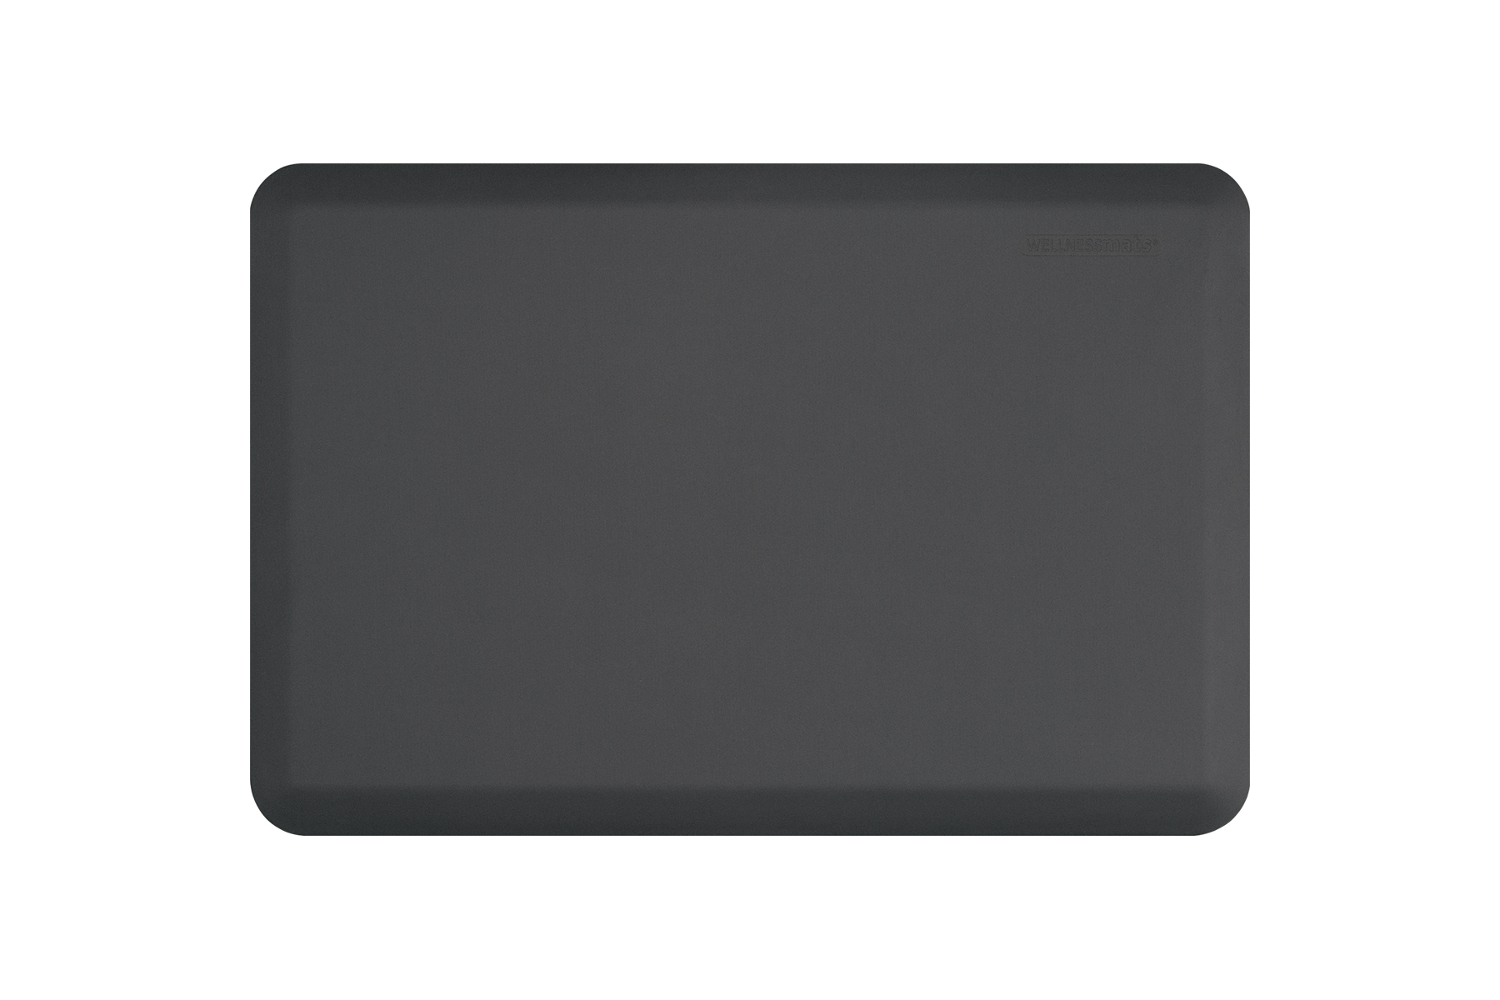 Wellness Anti-Fatigue Kitchen Mat - 3 x 2 ft. - Gray